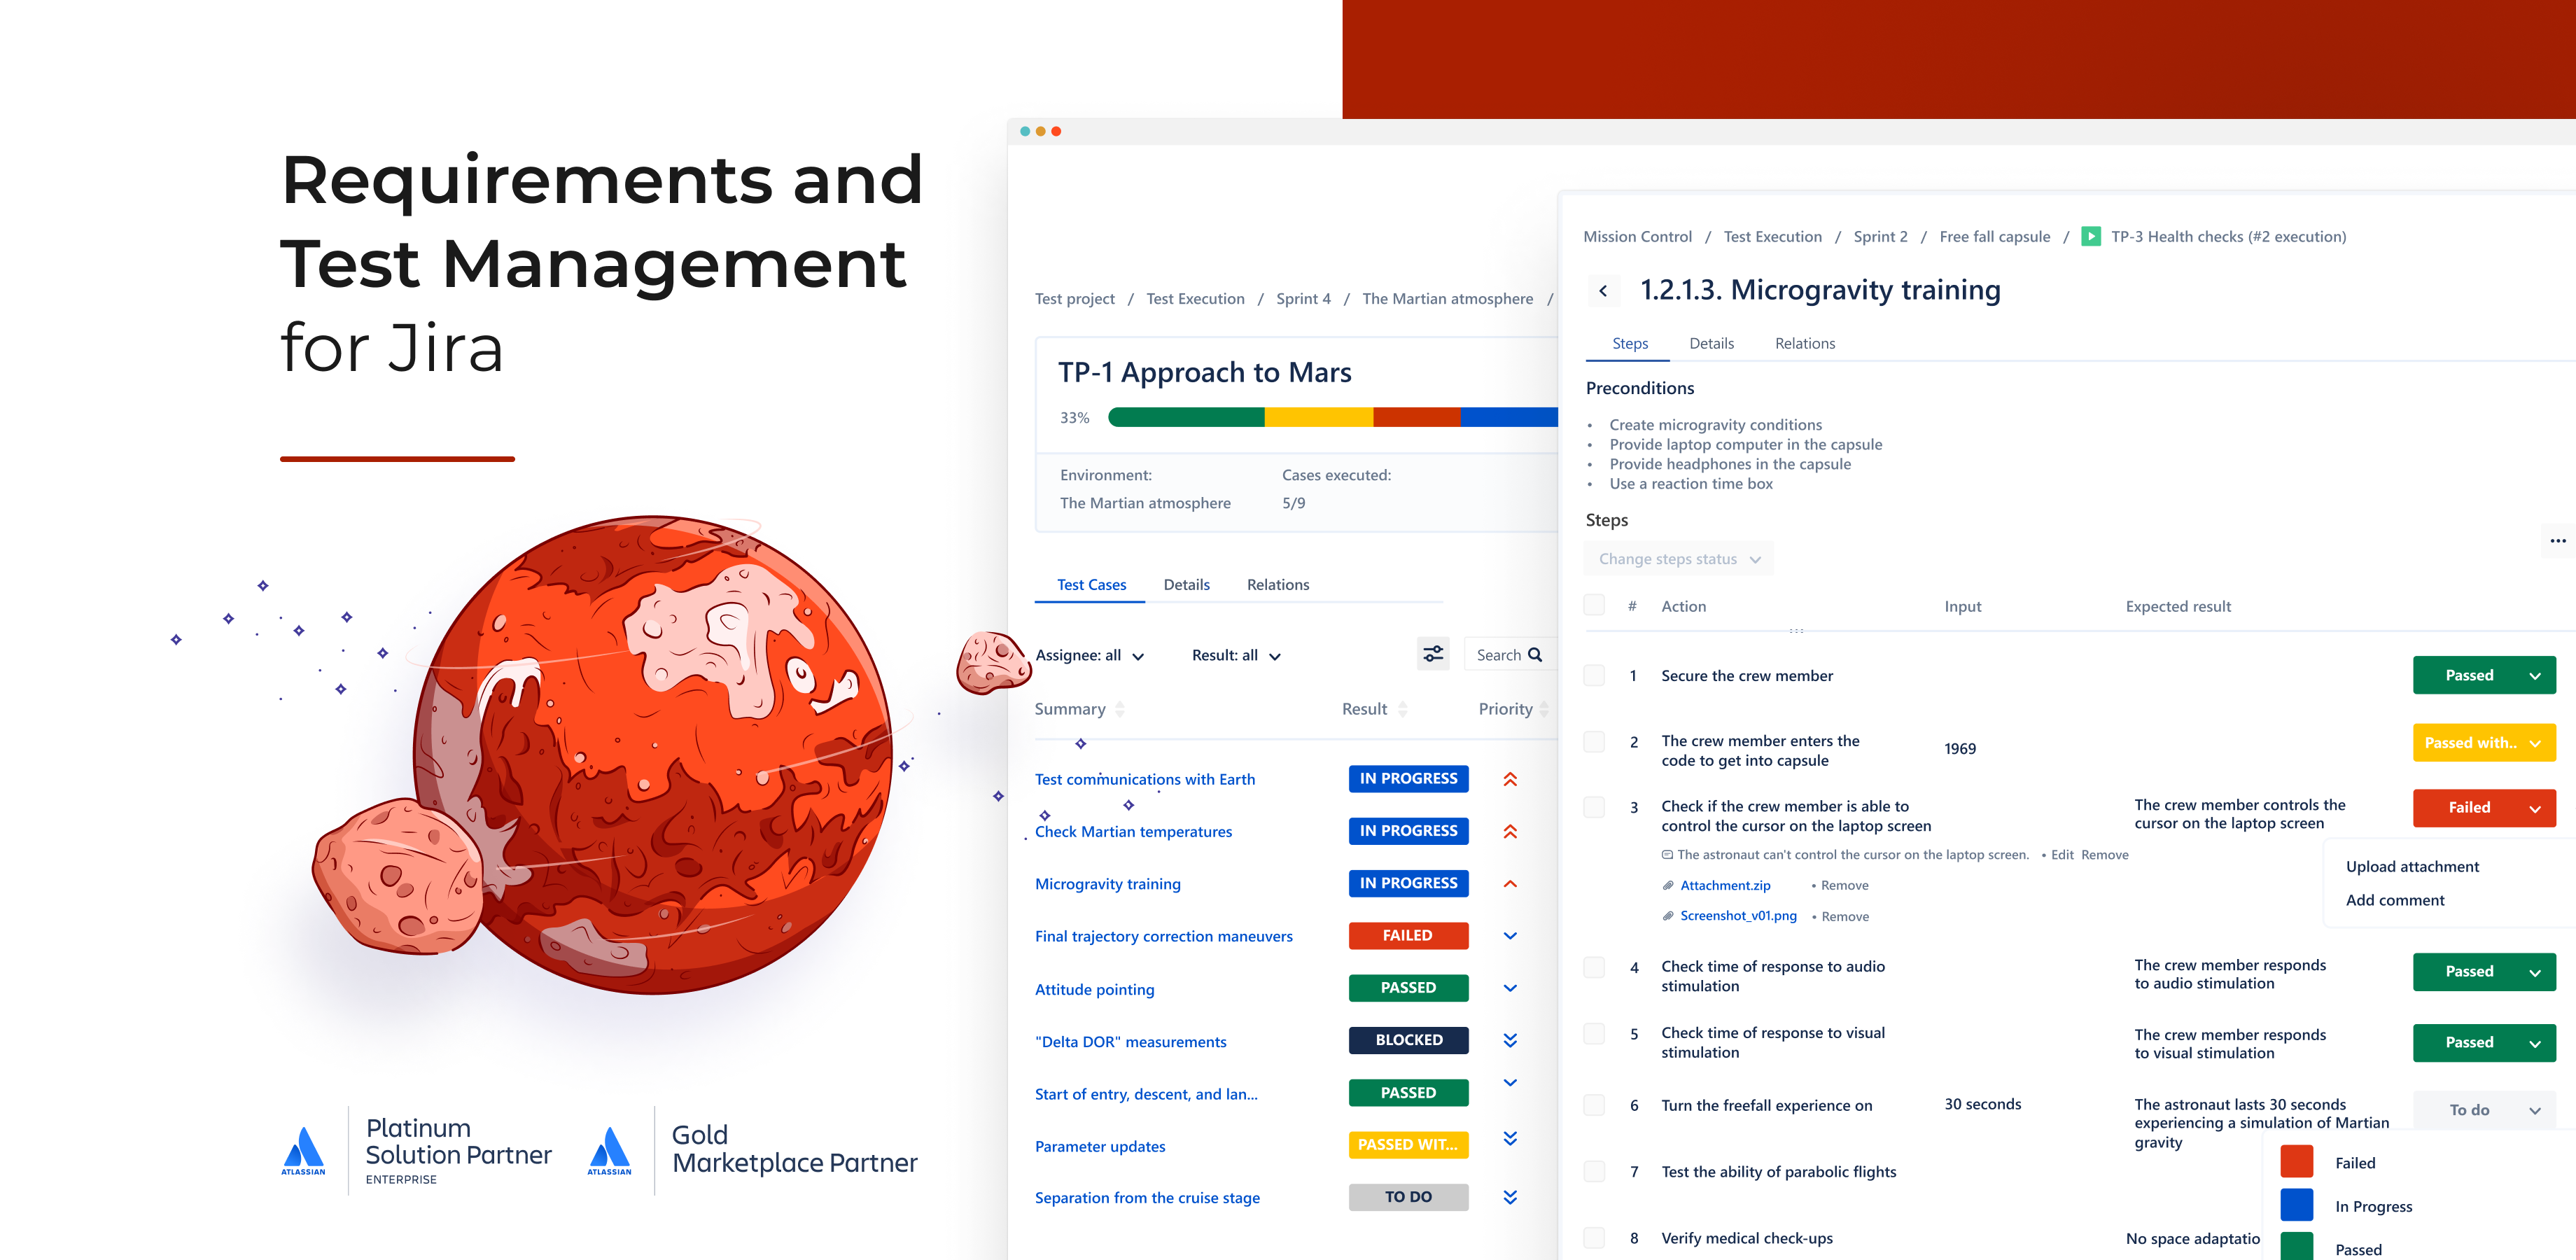 Requirements and Test Management for Jira app